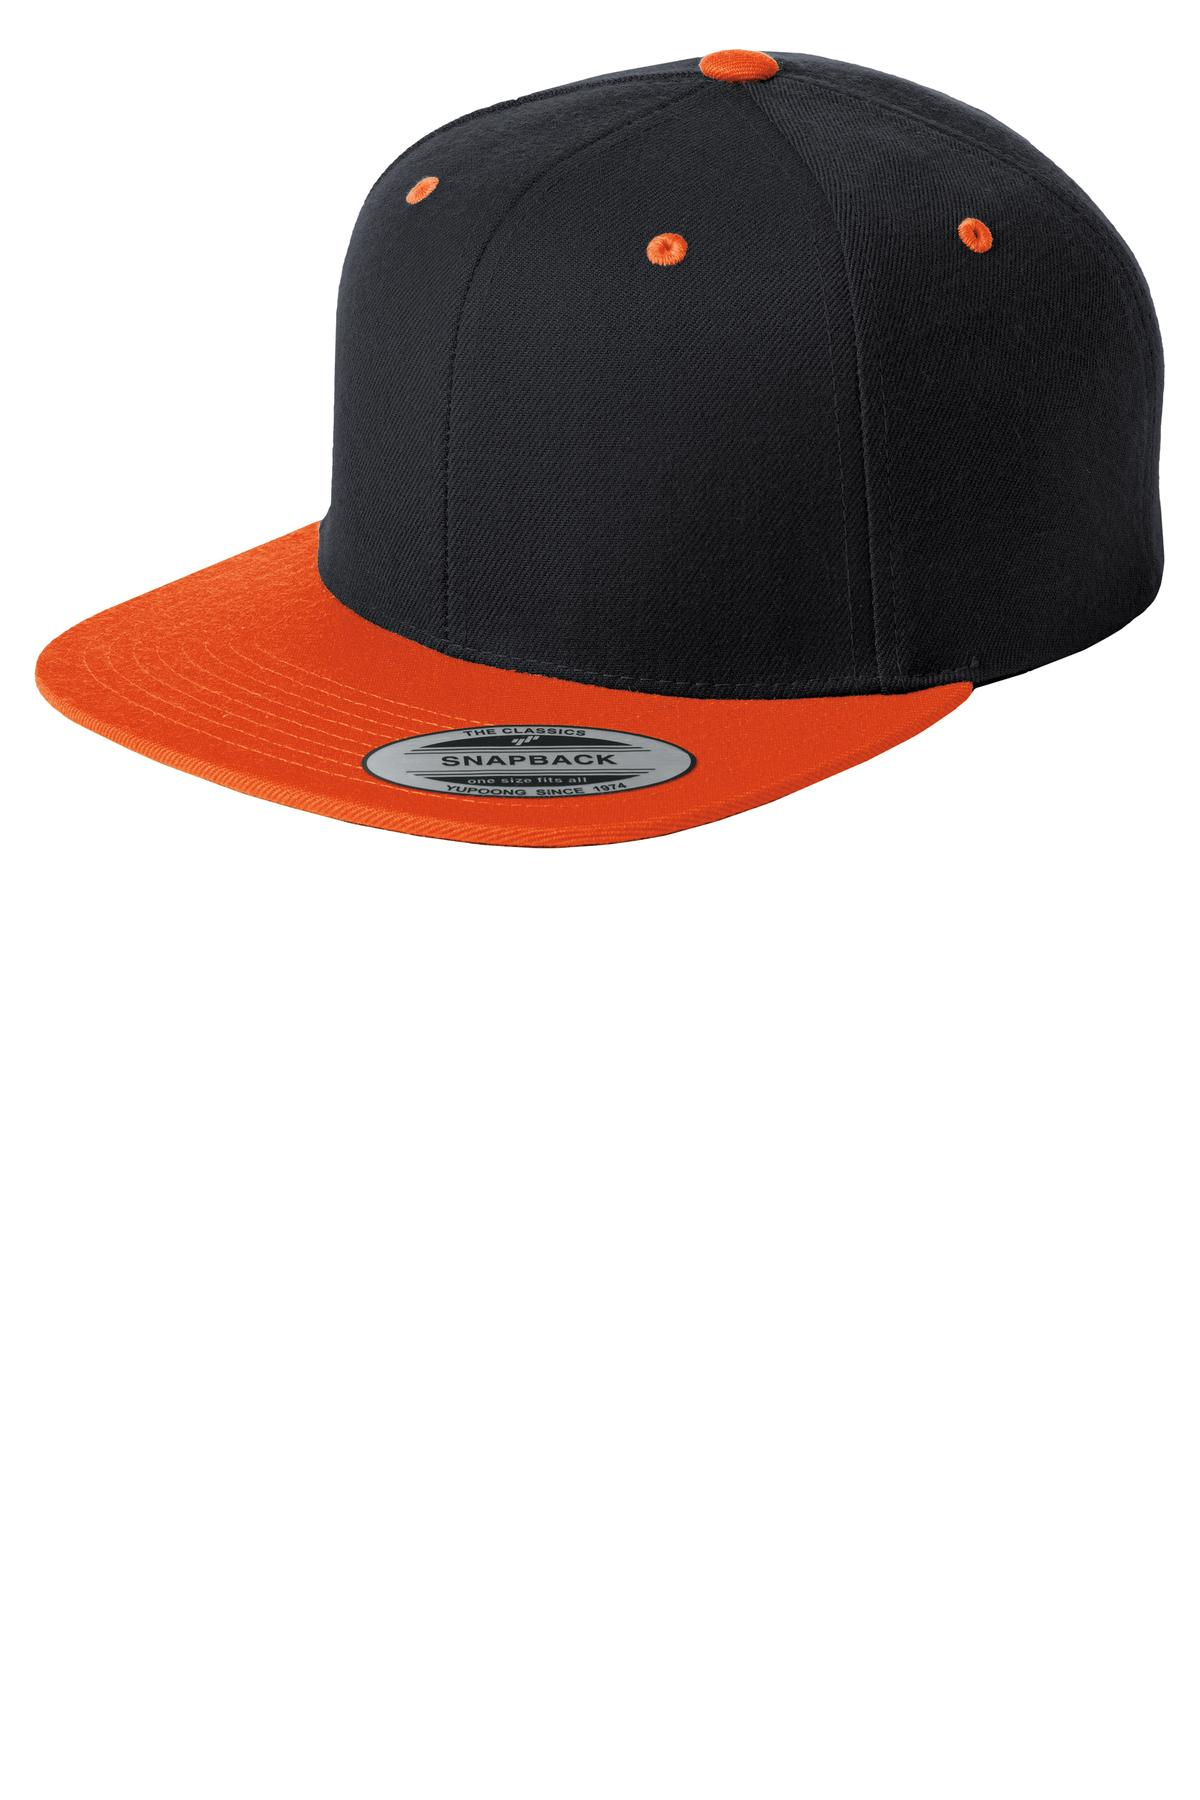 Sport-Tek ®  Yupoong ®  Flat Bill Snapback Cap. STC19 - Black/ Deep Orange